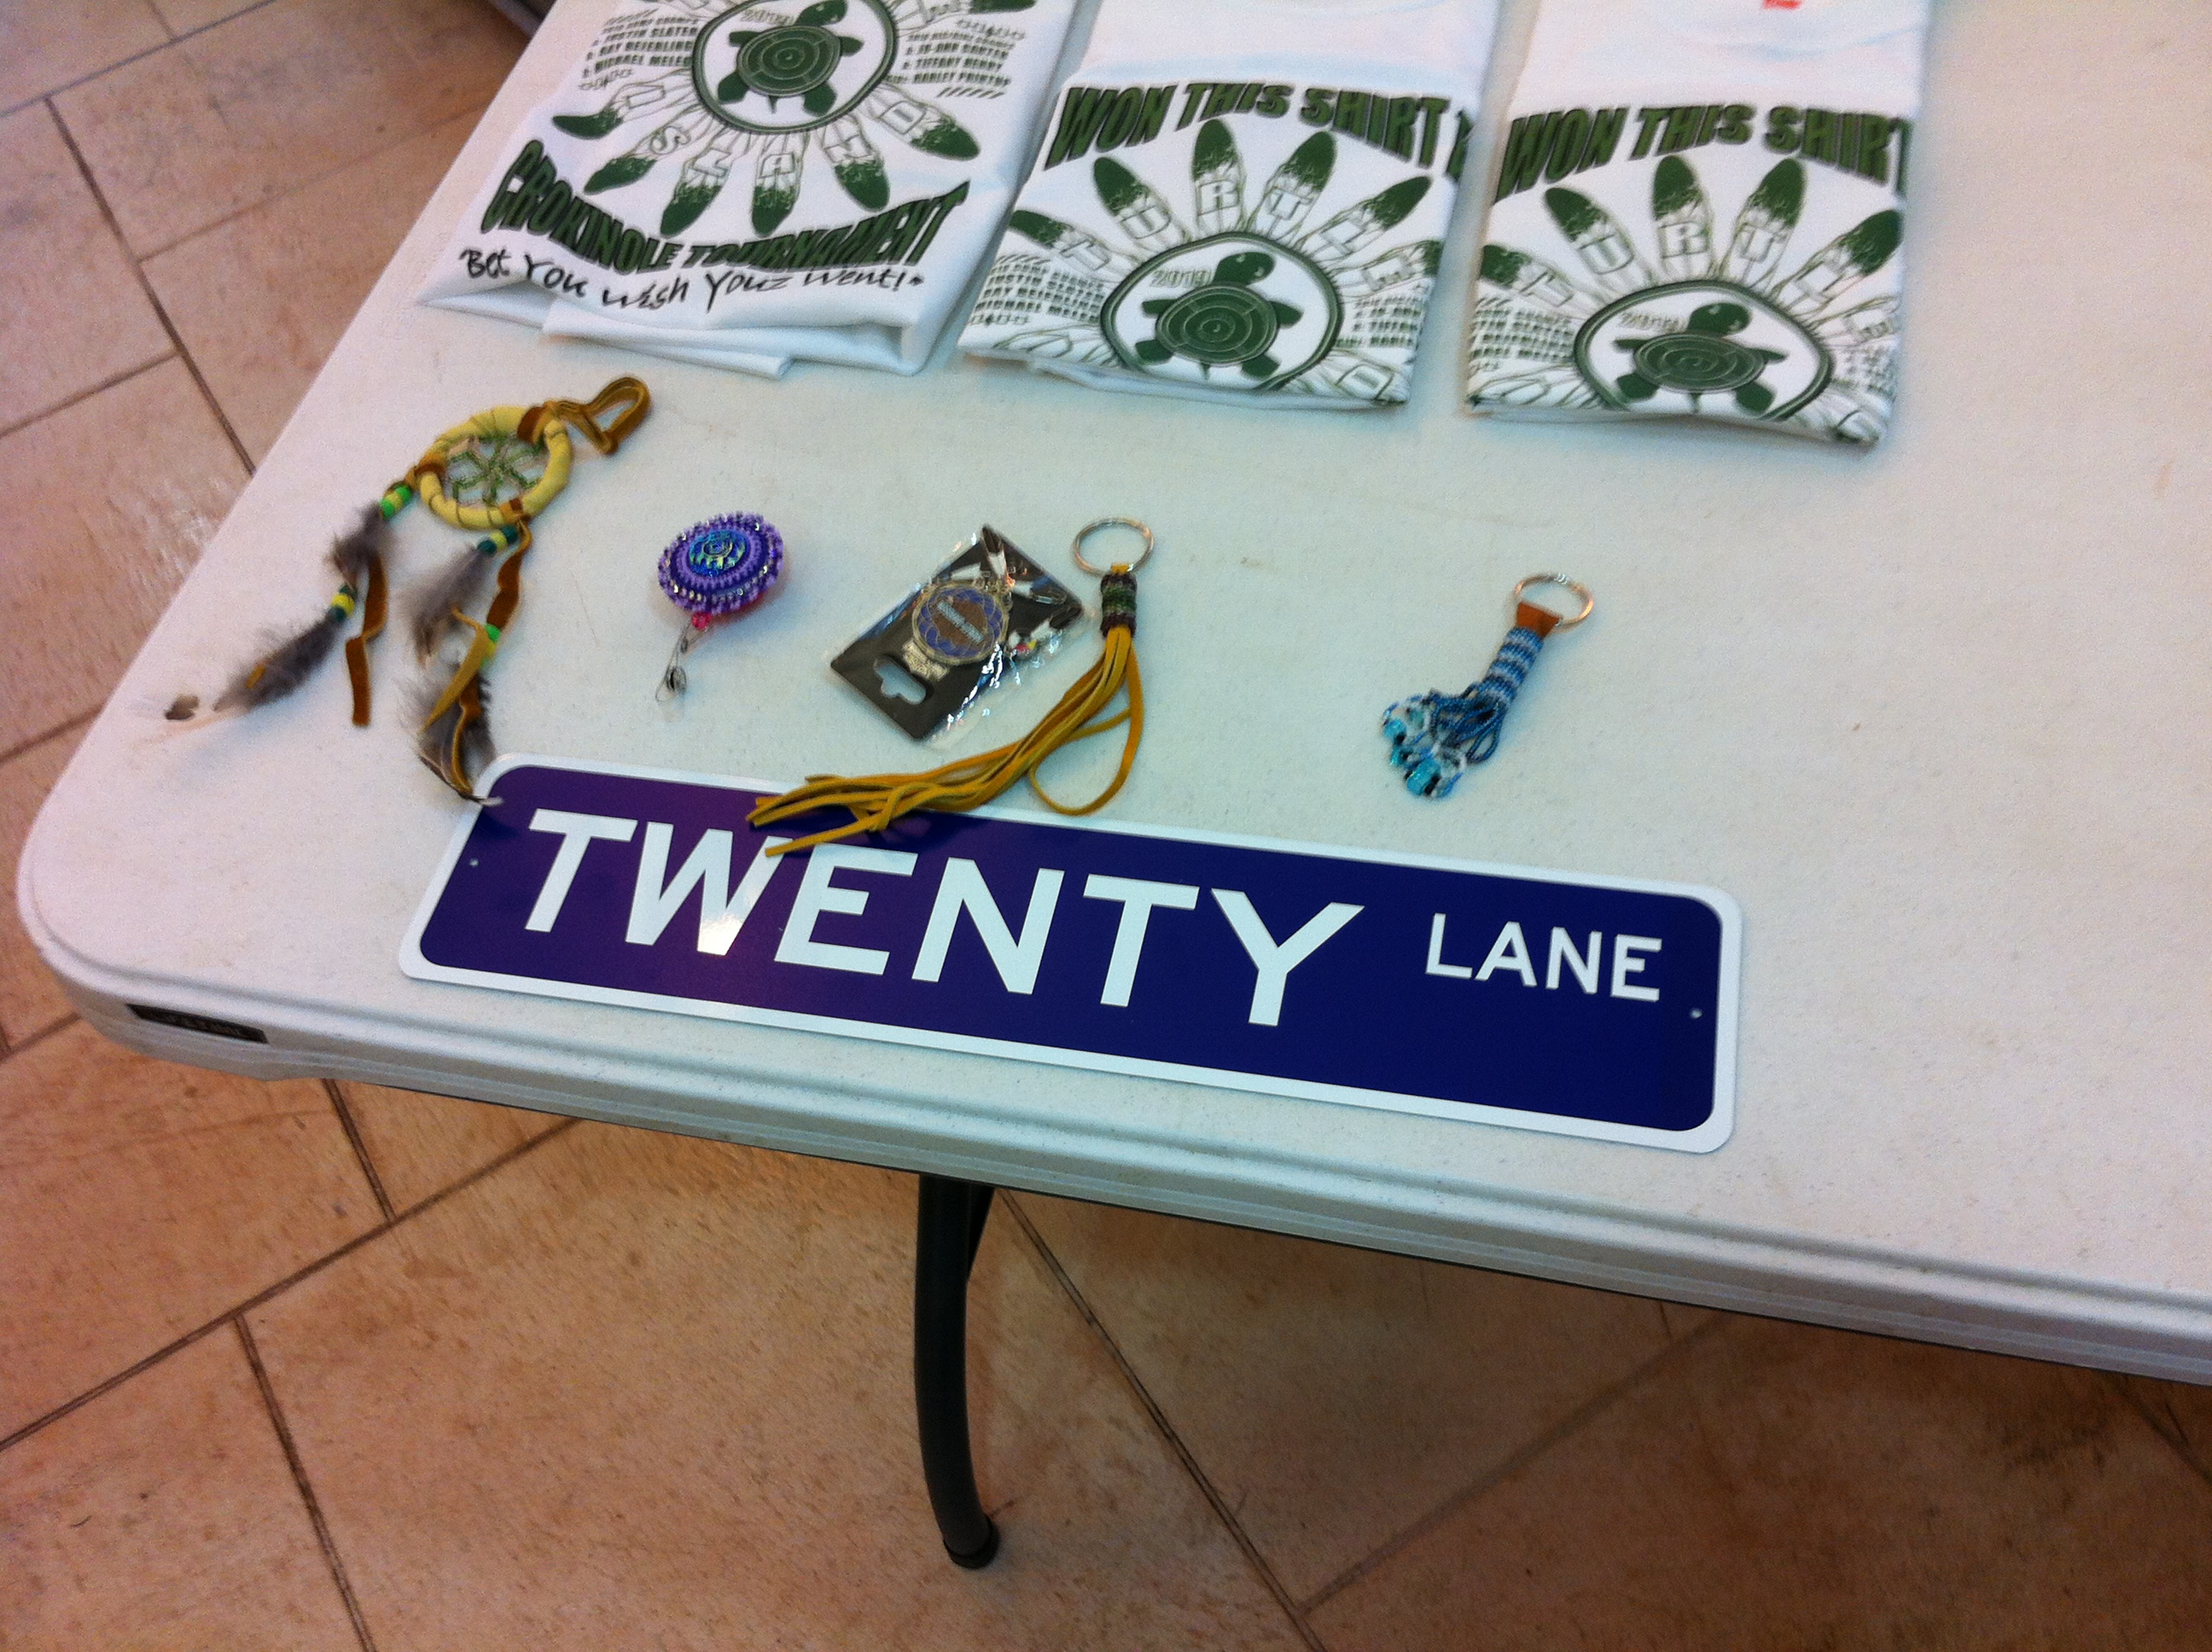 A picture of a street sign denoting Twenty Lane